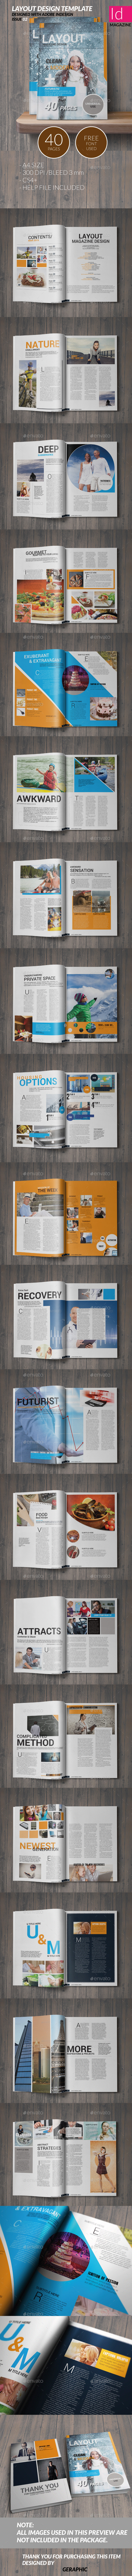 GraphicRiver Magazine Template Issue 02 40 pages 10891933